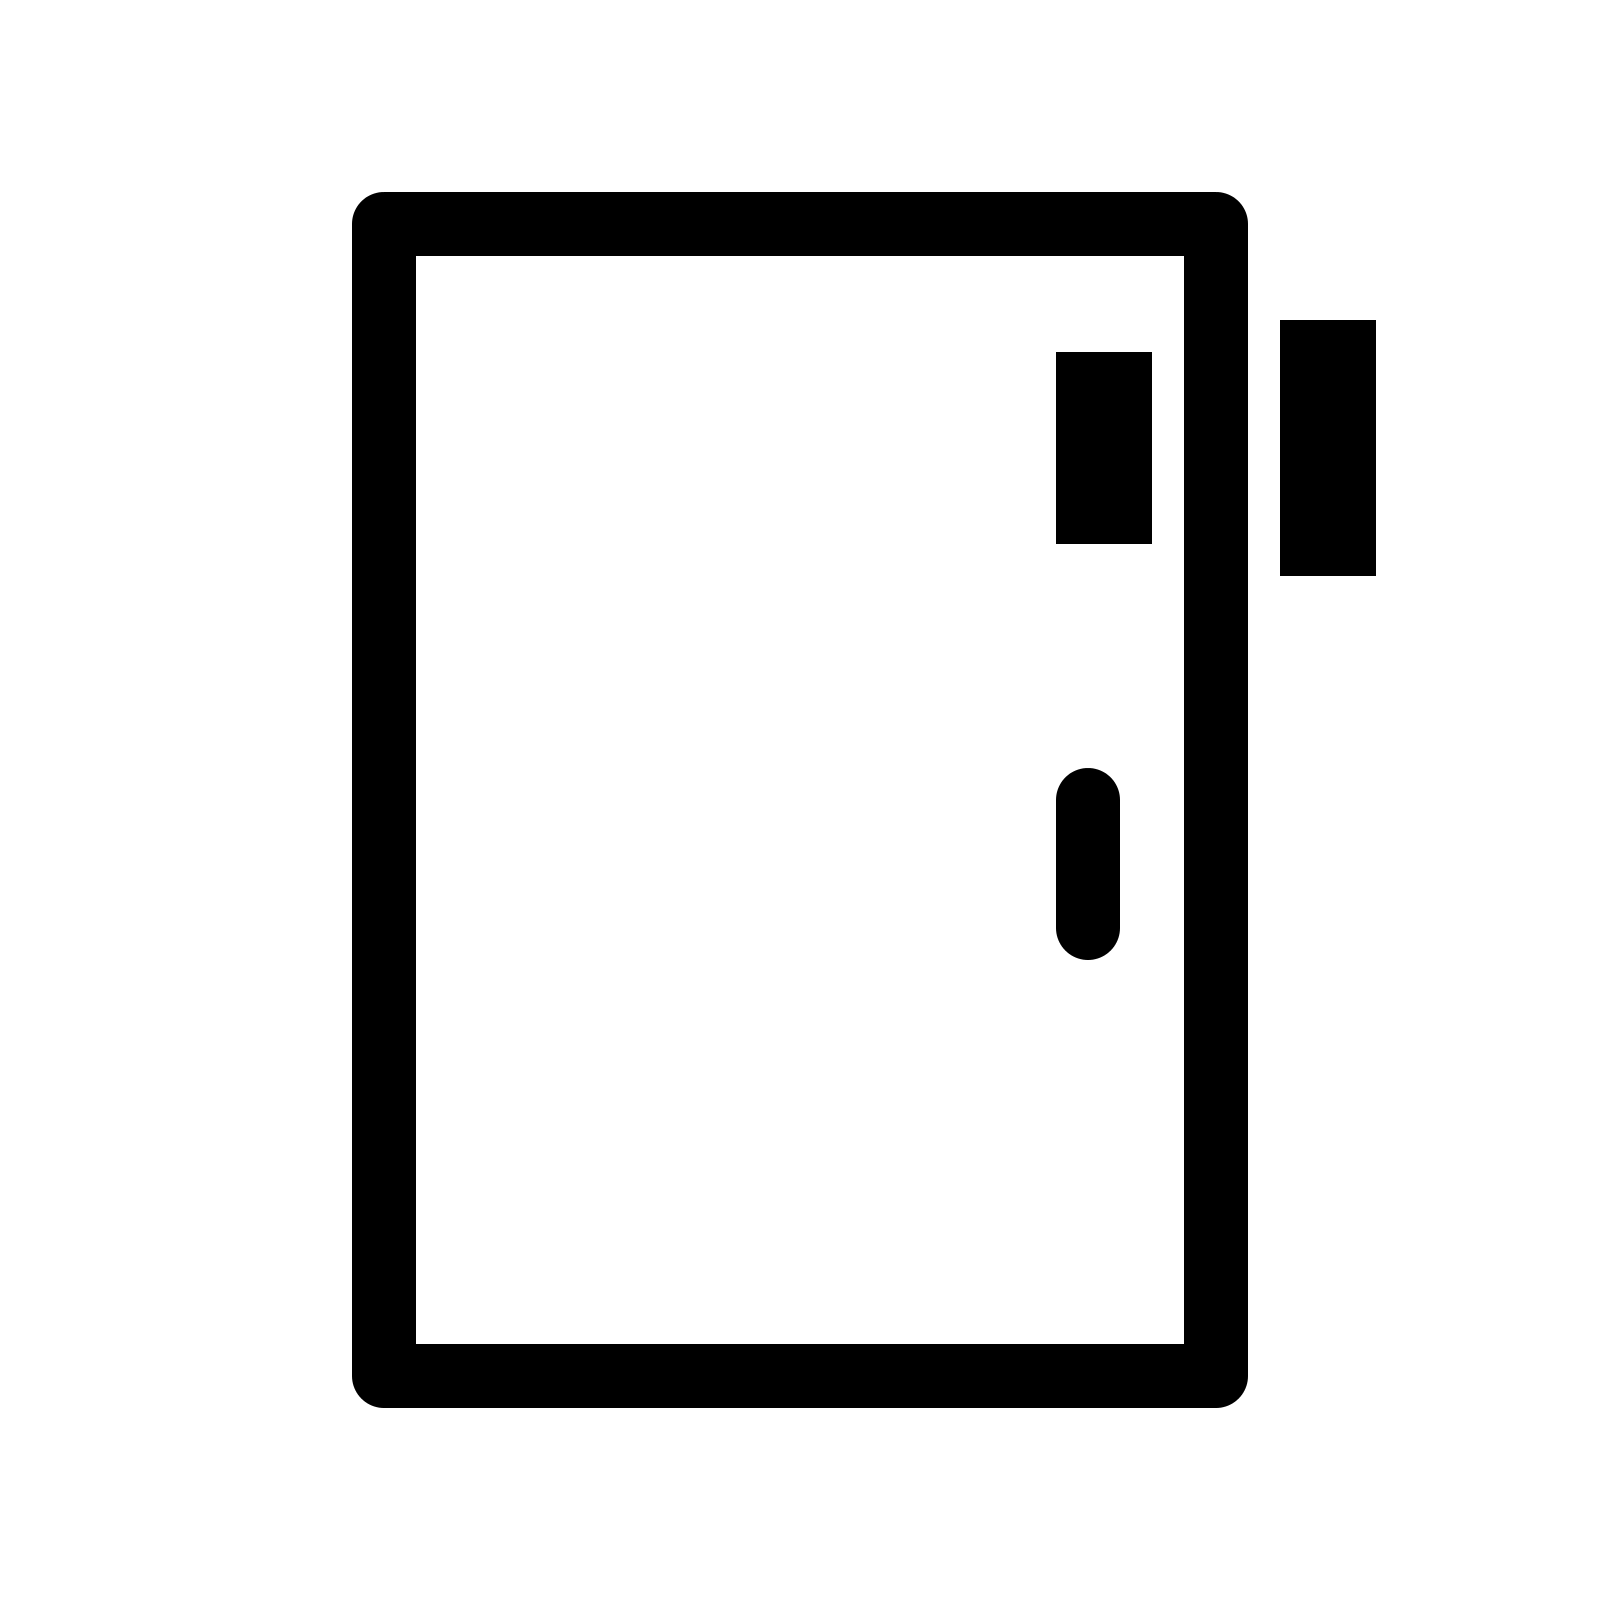 Door clipart rectangle shape Handle of a SVG a